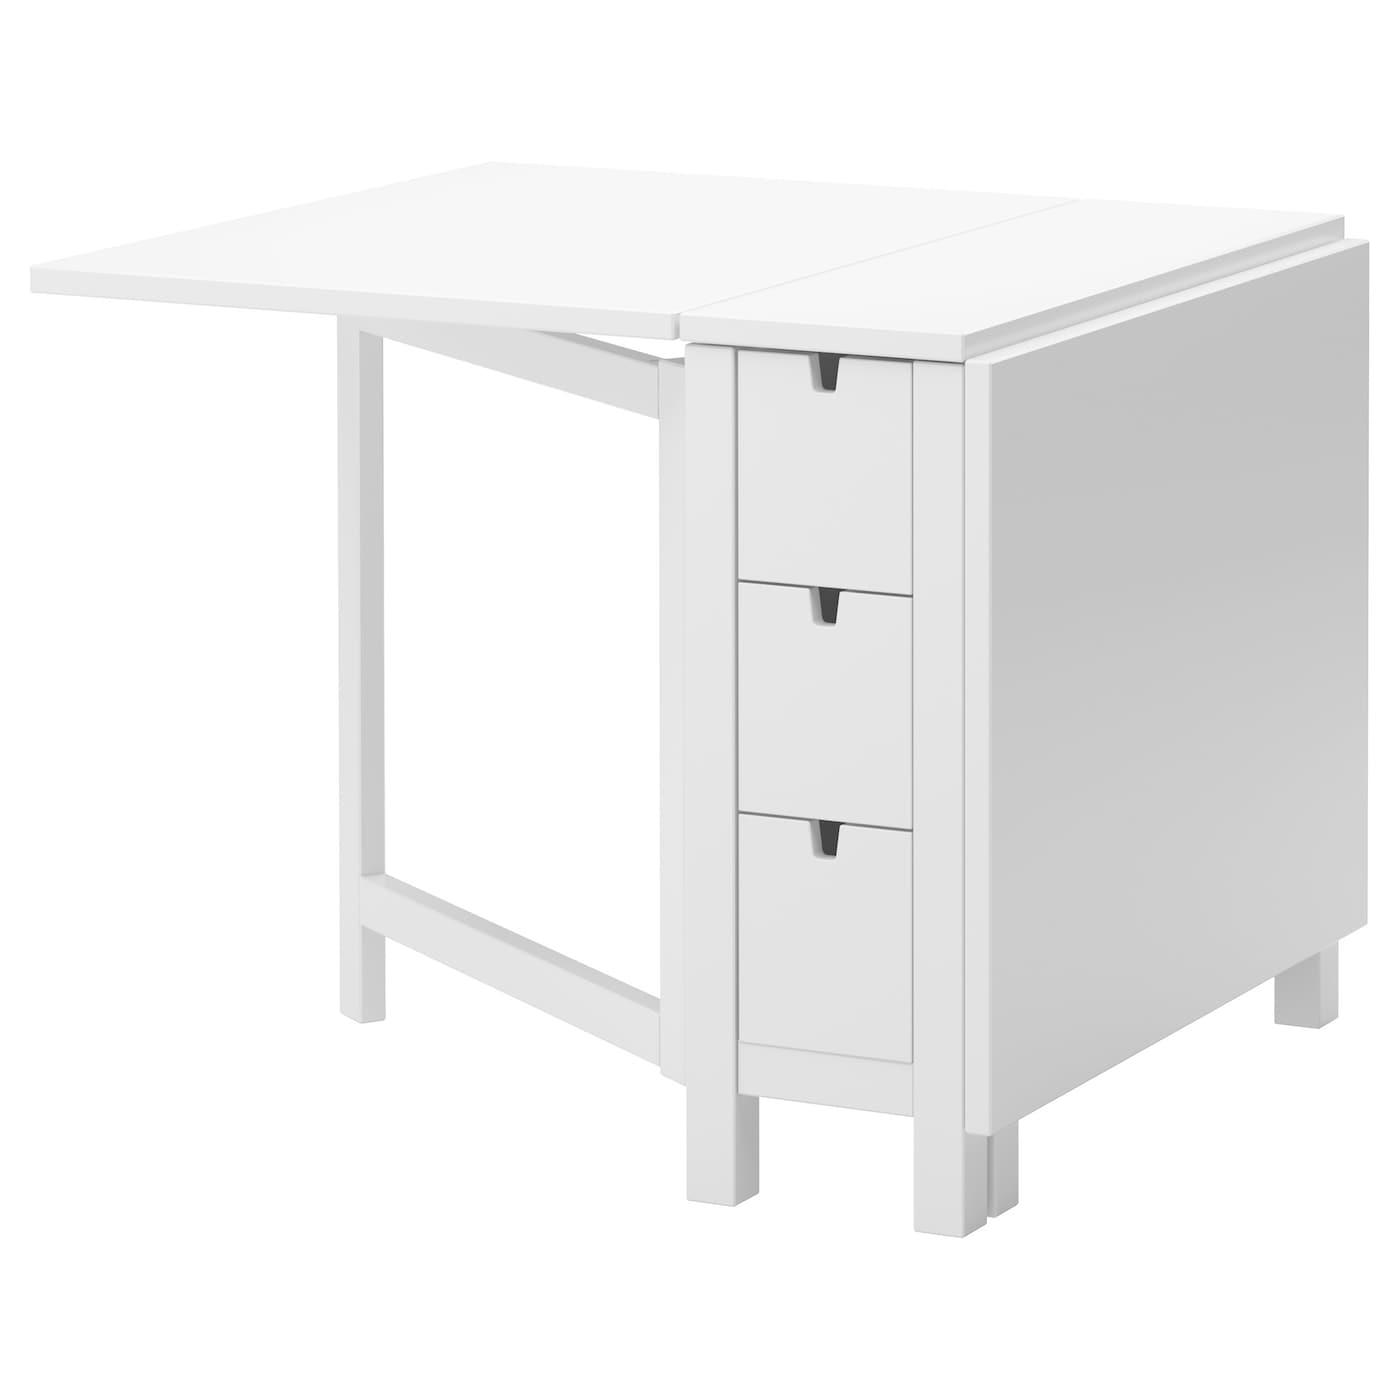 Norden gateleg table white 26 89 152x80 cm ikea for Table cuisine pliante ikea